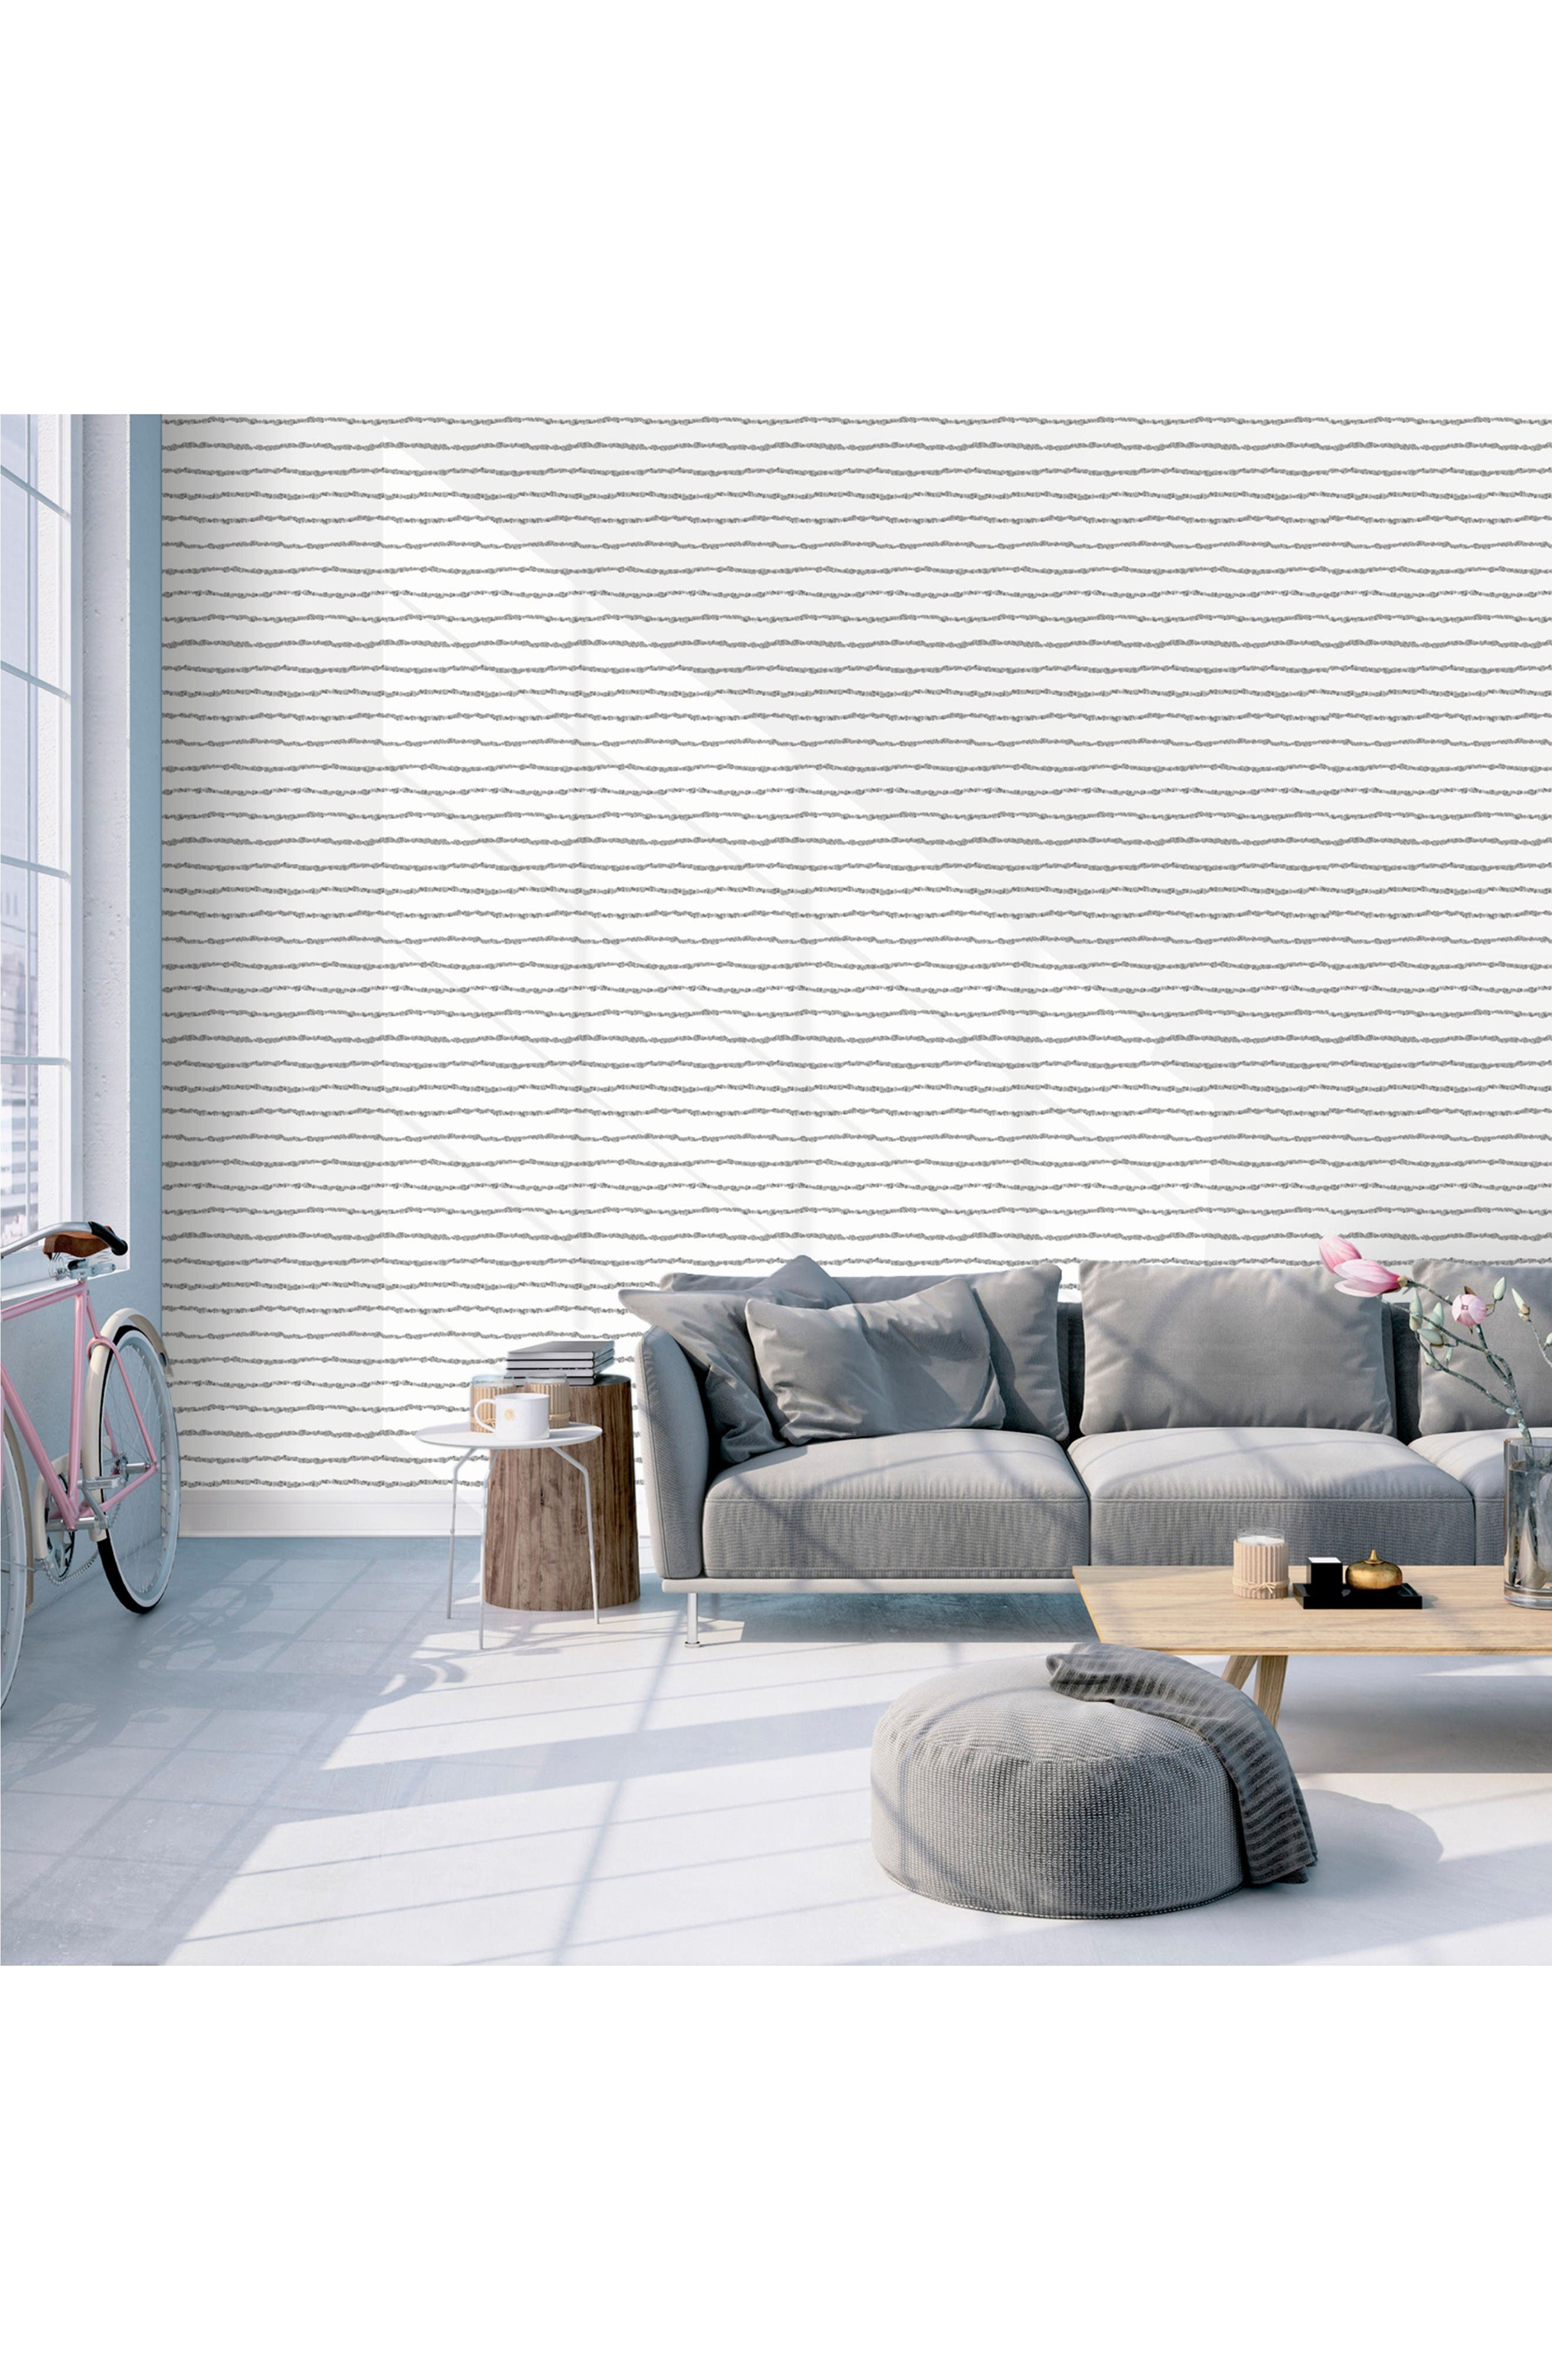 Lines Self-Adhesive Vinyl Wallpaper,                             Alternate thumbnail 2, color,                             Washed On White